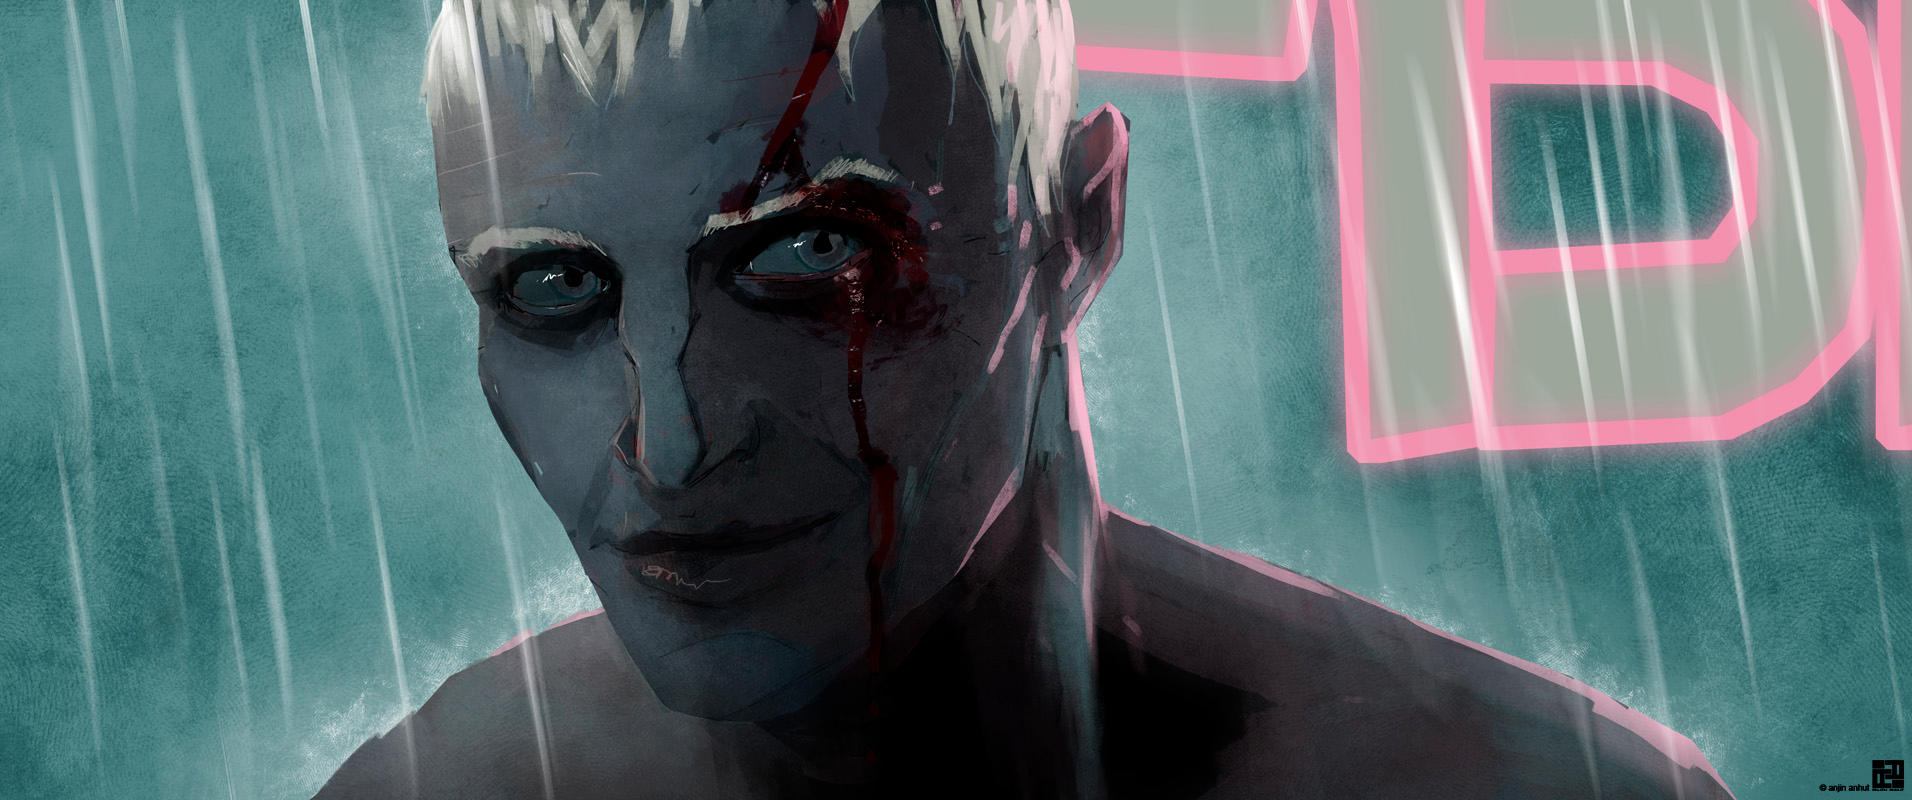 time to die, roy batty by anjinanhut